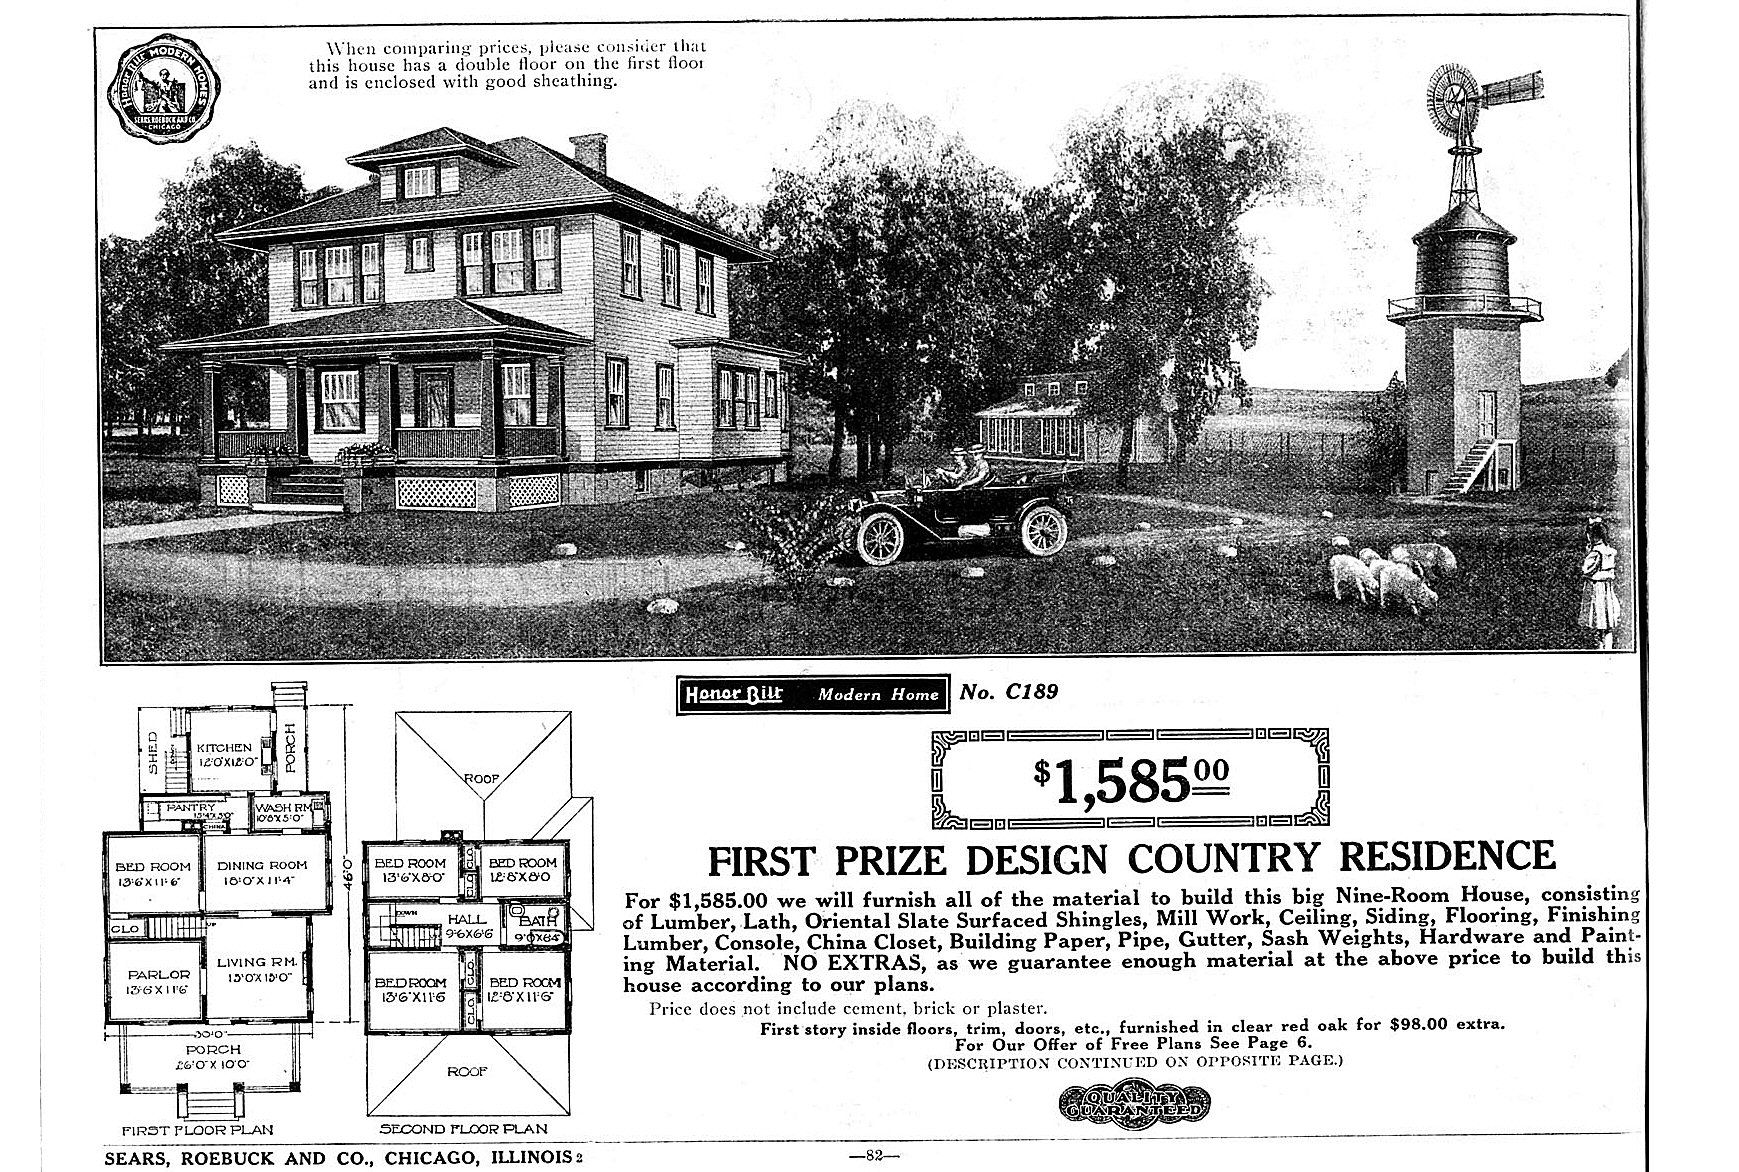 black and white illustration and floor polan of First Prize Design Country Residence from Sears, Roebuck and Co.